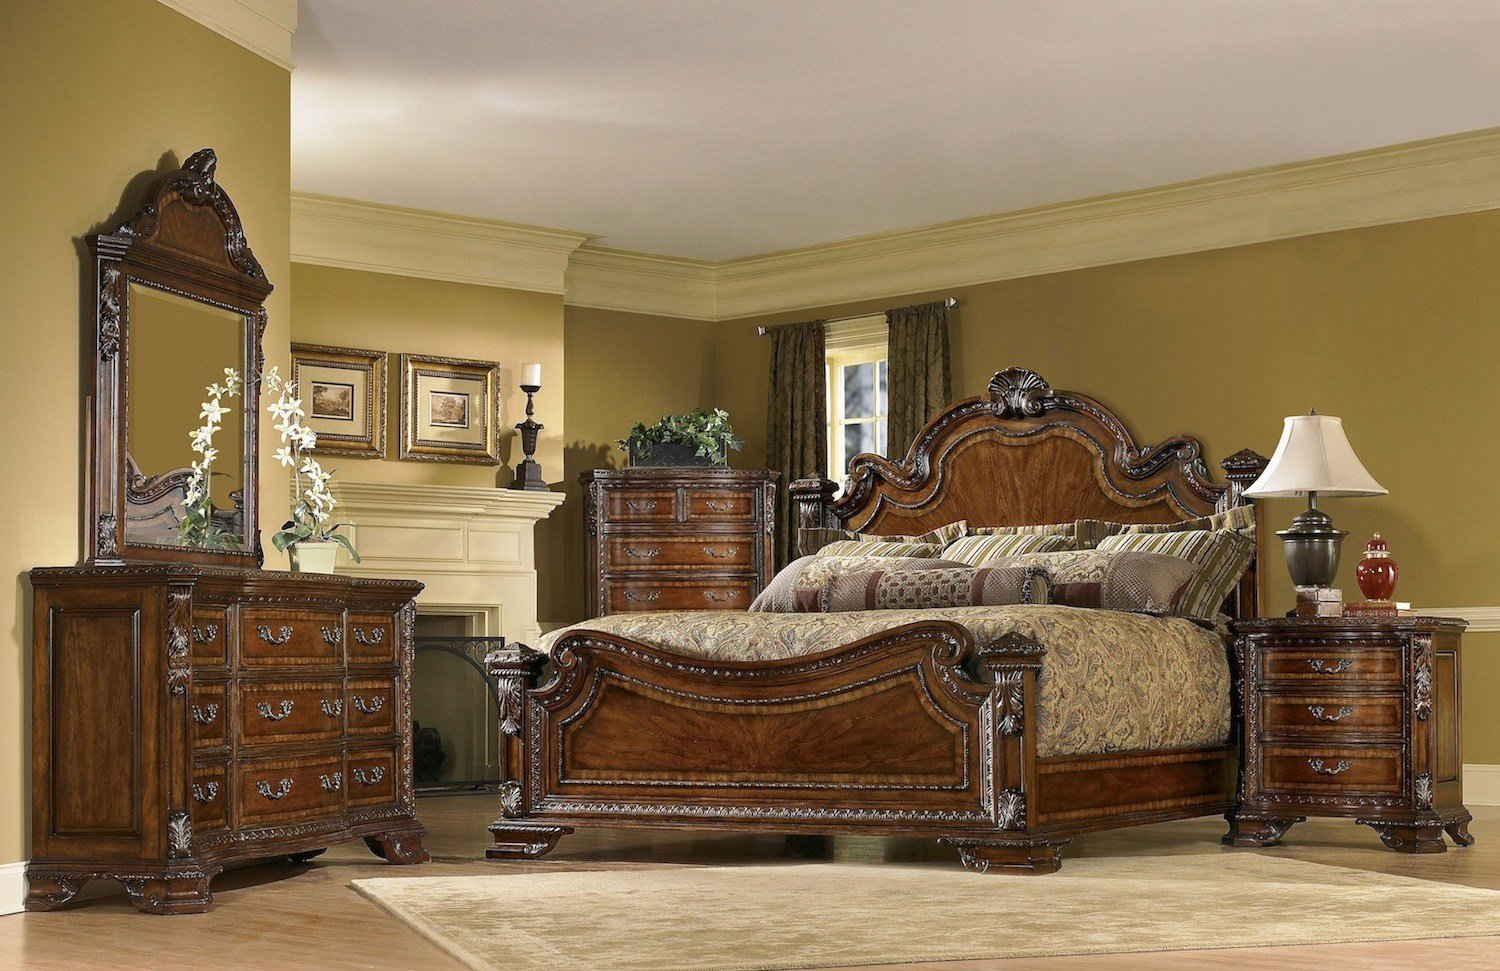 Best Old World 5 Piece King Traditional European Style Bedroom Furniture Set 143000 Ebay With Pictures